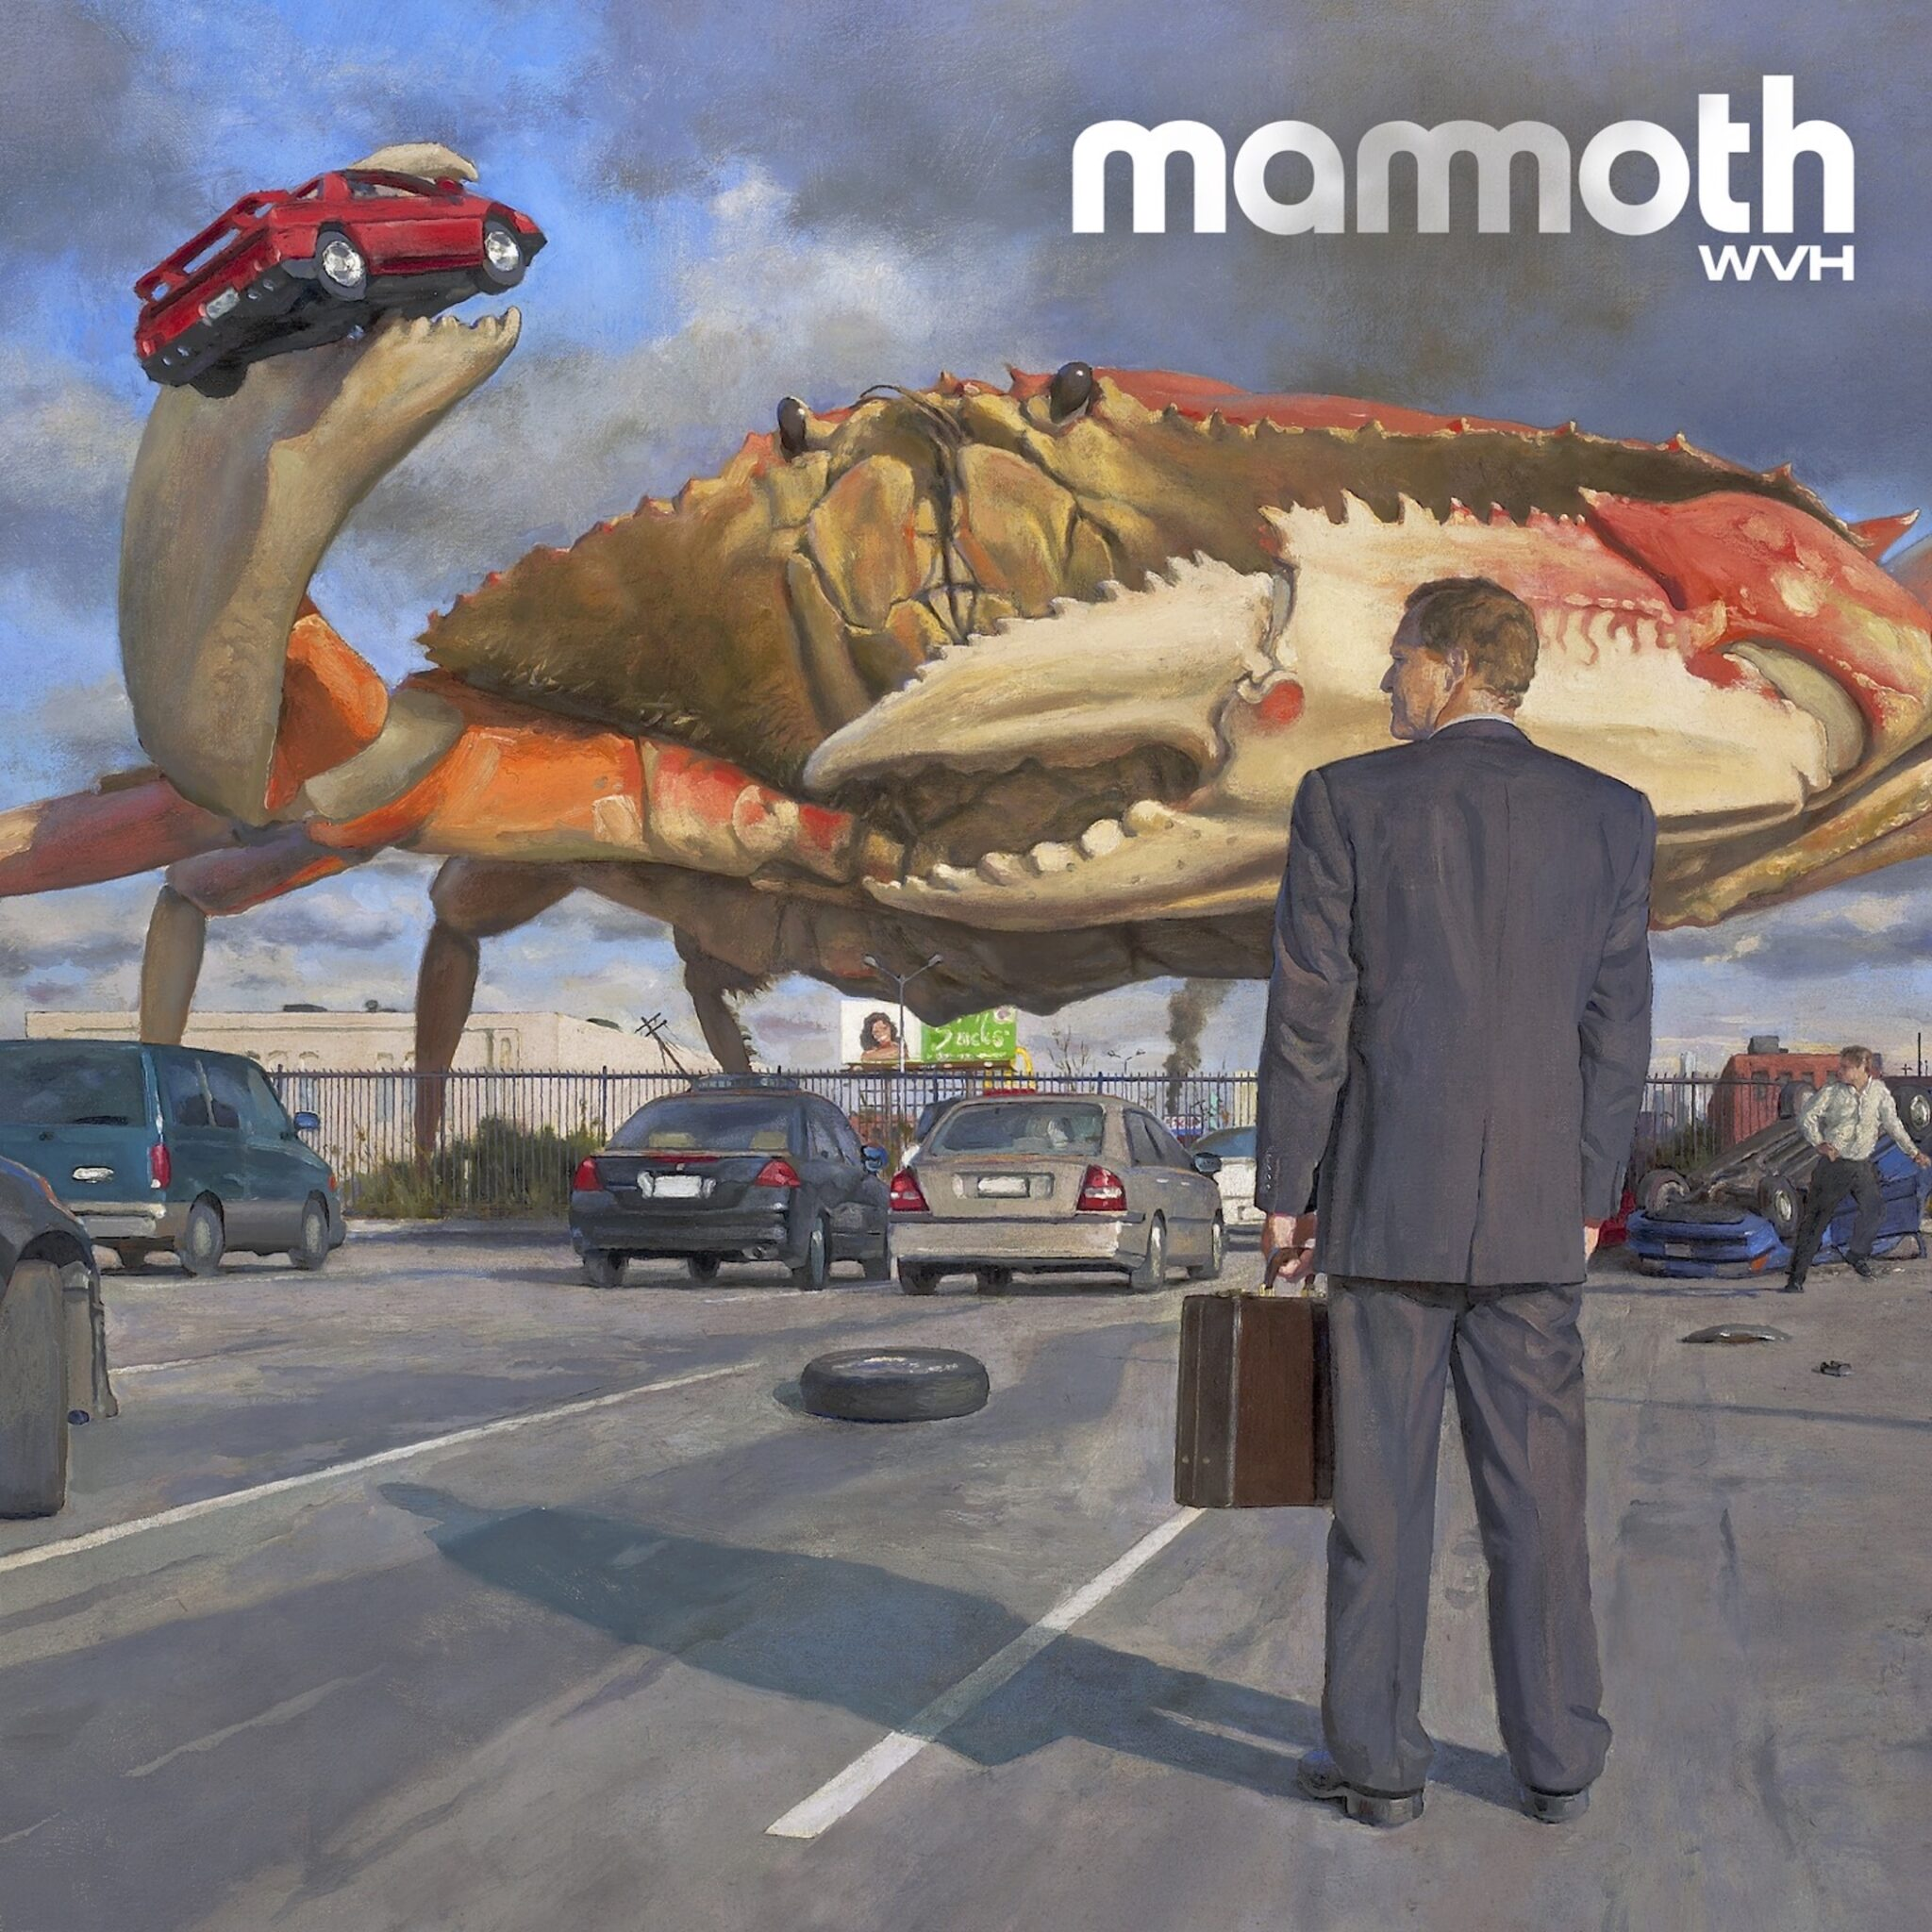 Mammoth WVH To Release Self-Titled Debut Album On June 11th